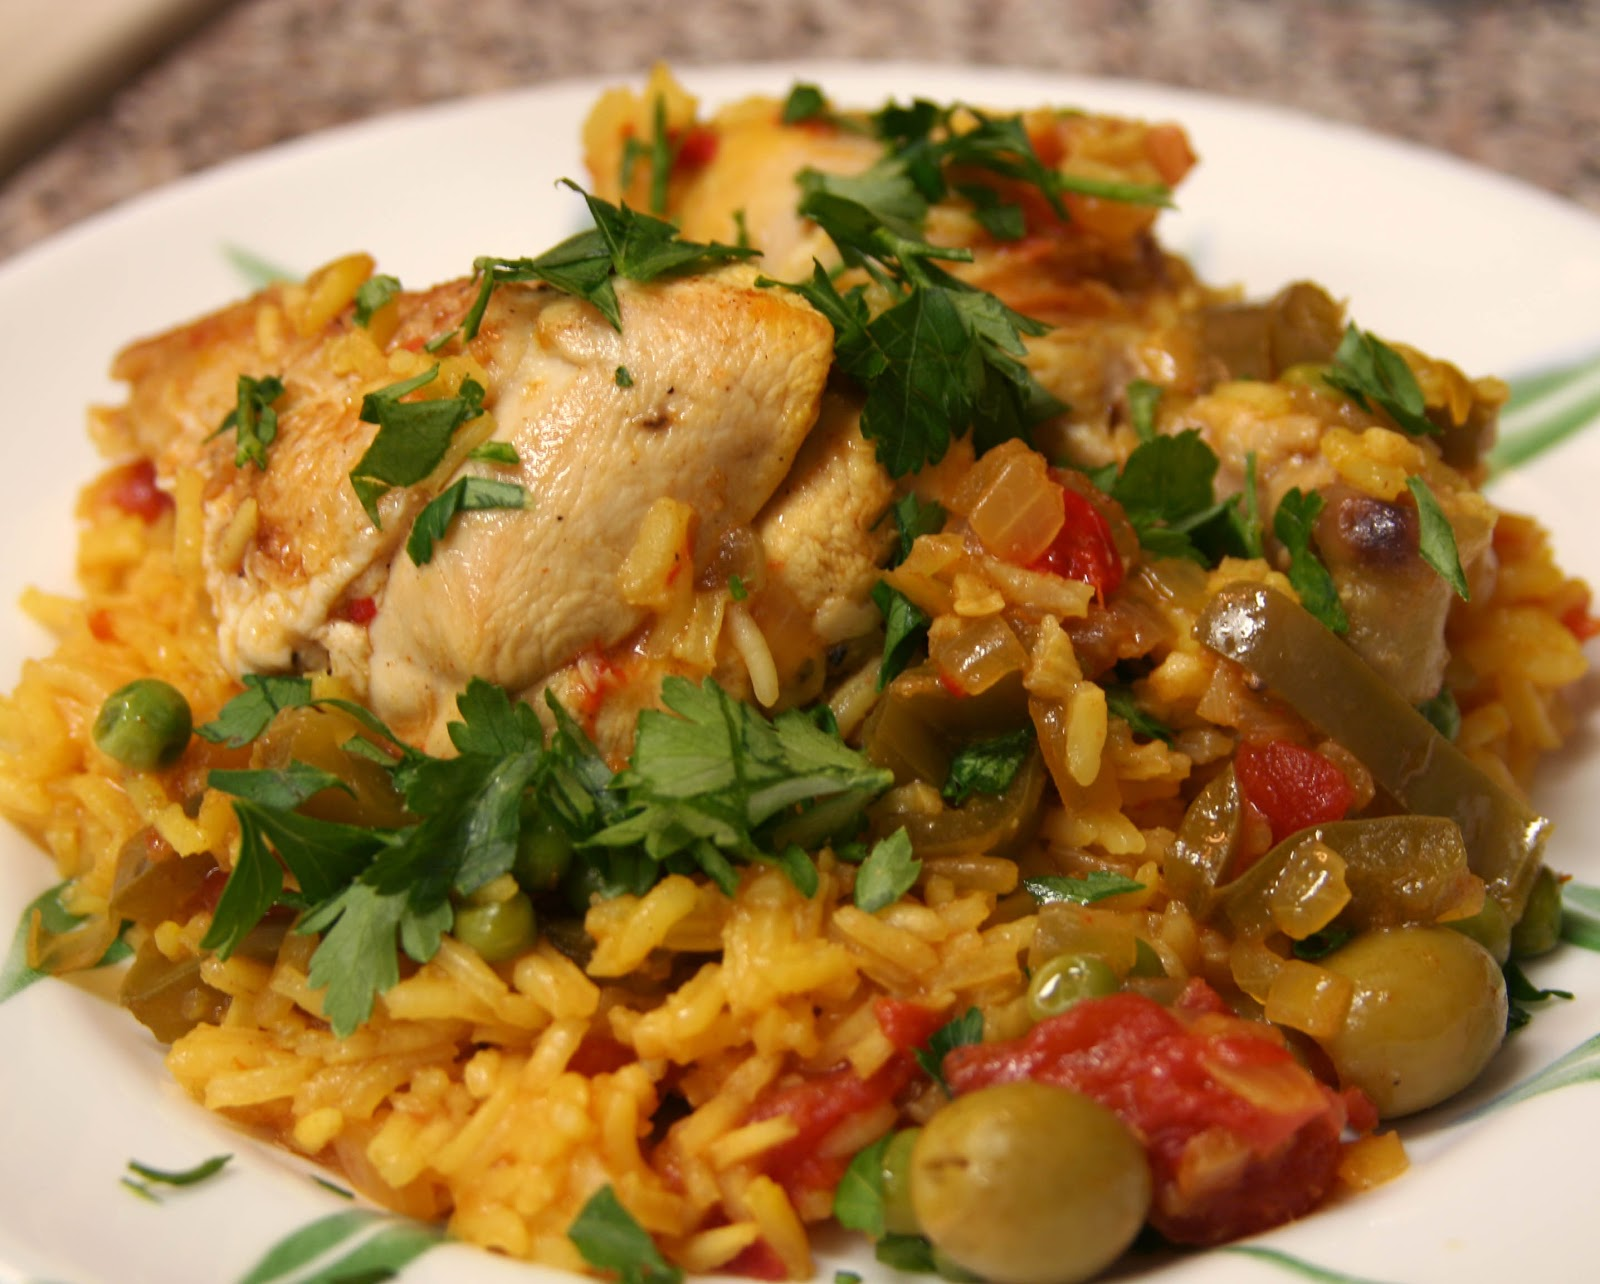 Culturally Confused: Gourmet: Arroz con Pollo (Rice with Chicken)